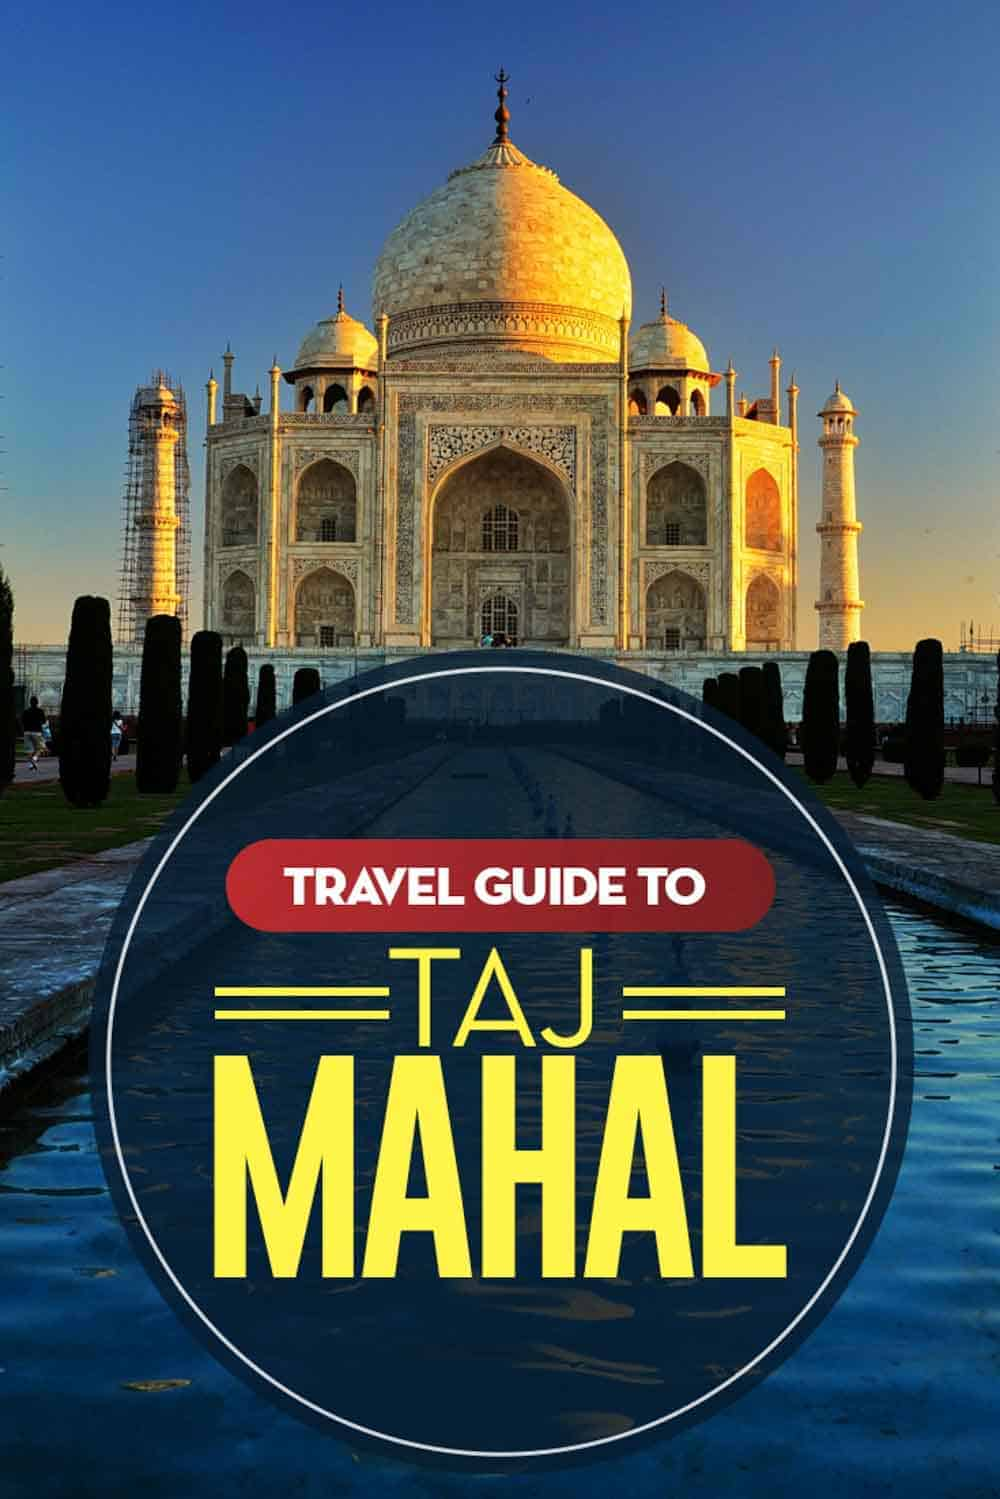 Travel Guide to the Stunning Taj Mahal in India. #indian #india #tajmahal #travel #travelblogger #travelblog #traveltips